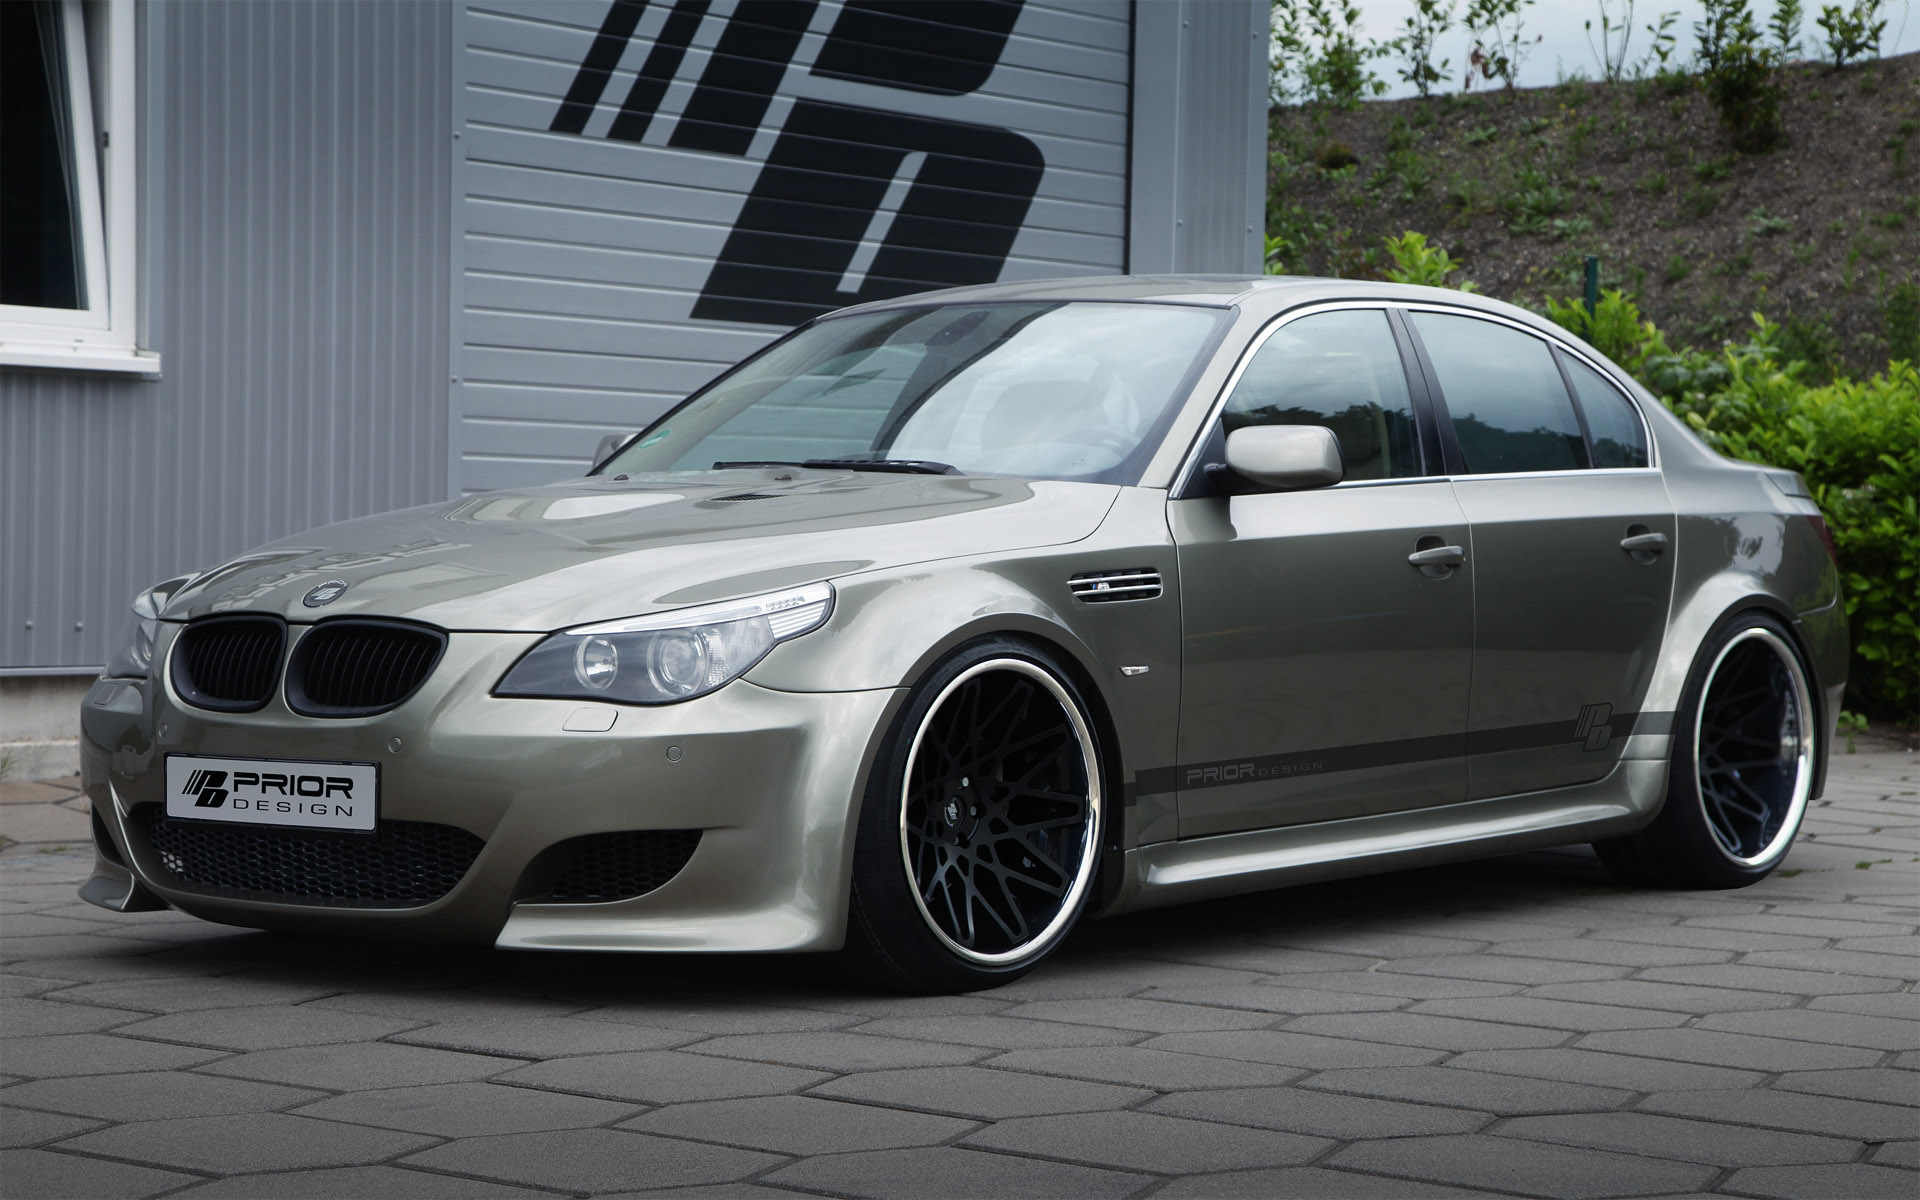 Bmw 5 Series E60 By Prior Design Bmw Photo 31335100